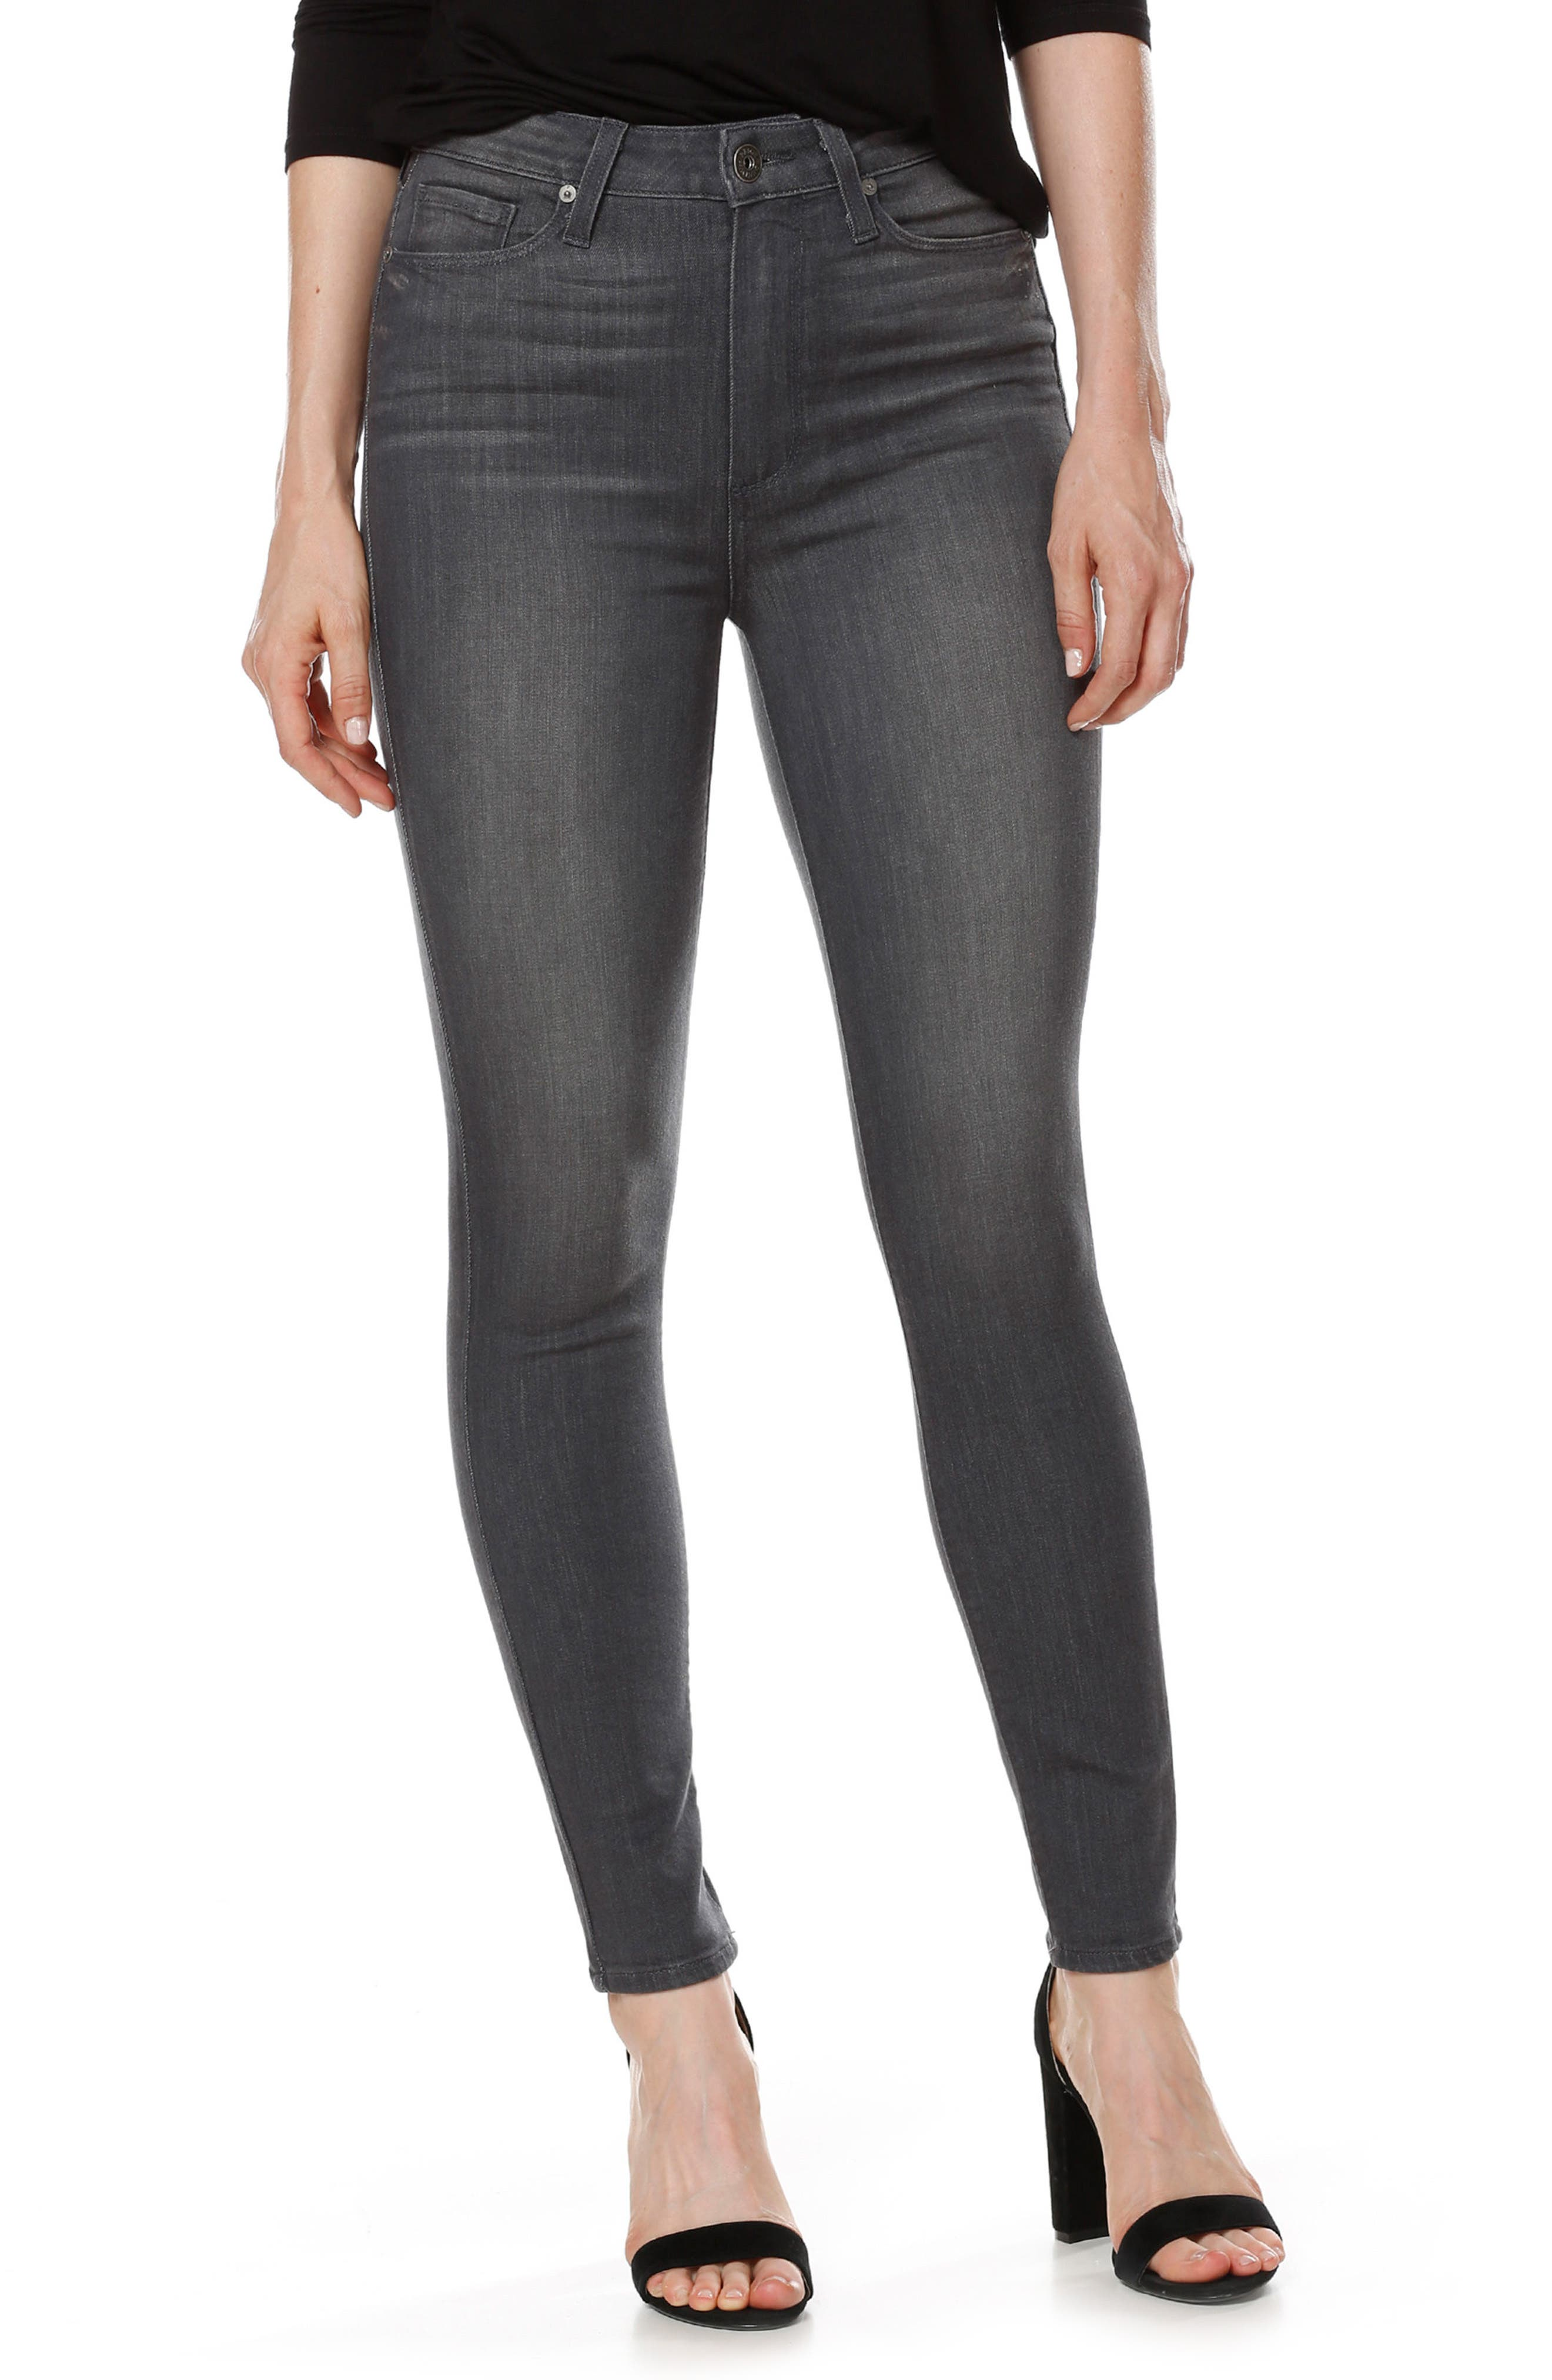 Alternate Image 1 Selected - PAIGE Transcend - Margot High Waist Ankle Ultra Skinny Jeans (Summit Grey)